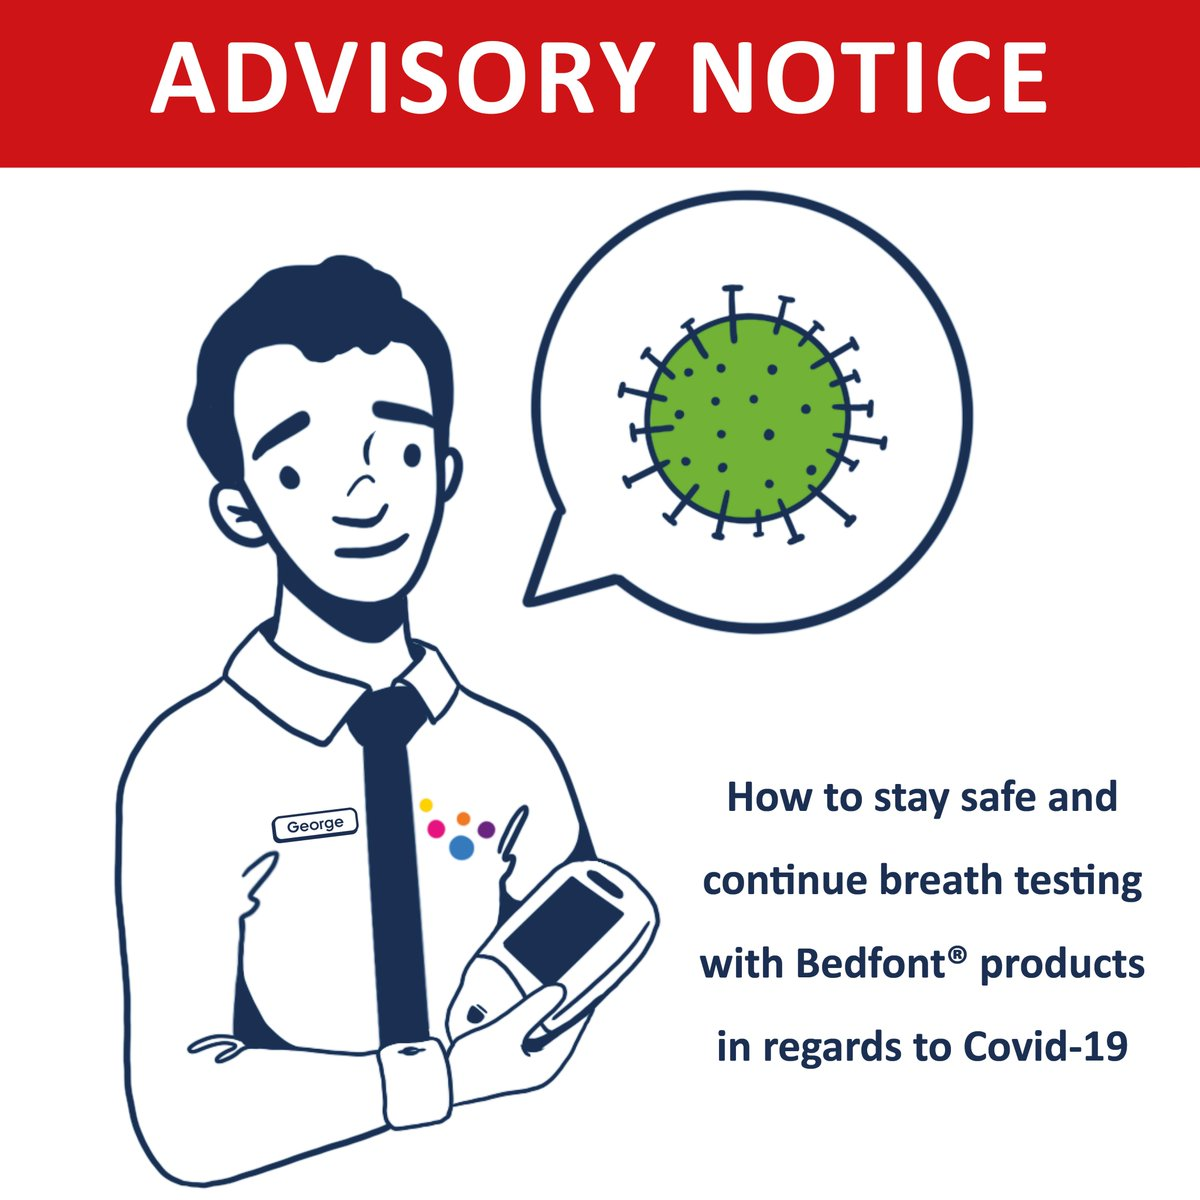 To learn more about how to stay safe and continue #breathtesting with Bedfont products in regards to #COVID19, visit our information page here: https://www.bedfont.com/coronavirus  #coronavirus #breathanalysis #medicaldevices #staysafepic.twitter.com/CDlSE6K4Du